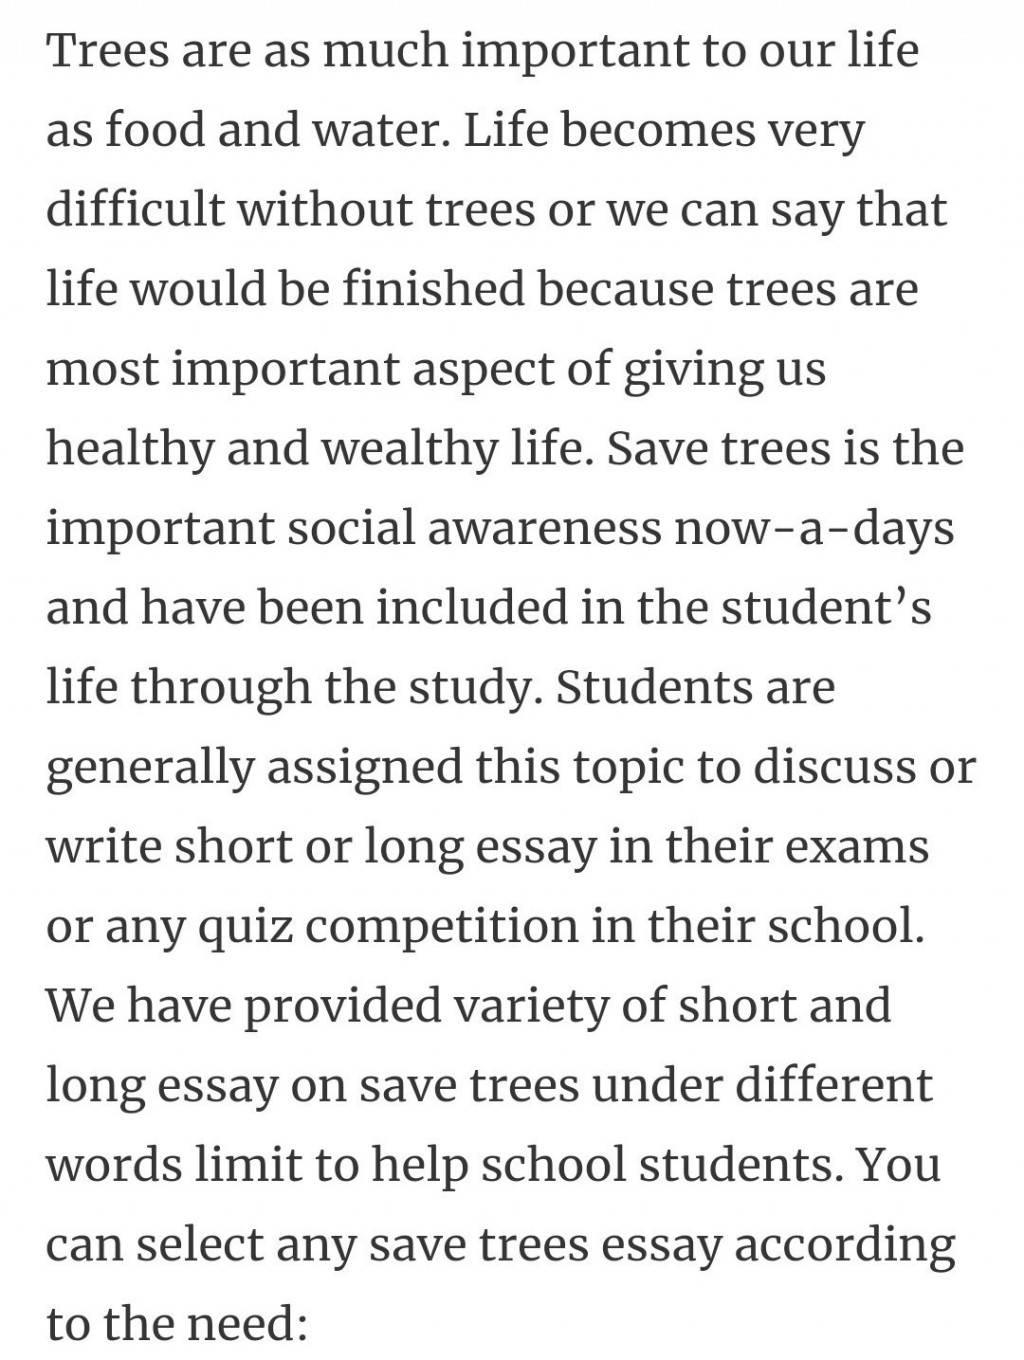 001 Essay Example Description Of Trees For Striking Essays Large